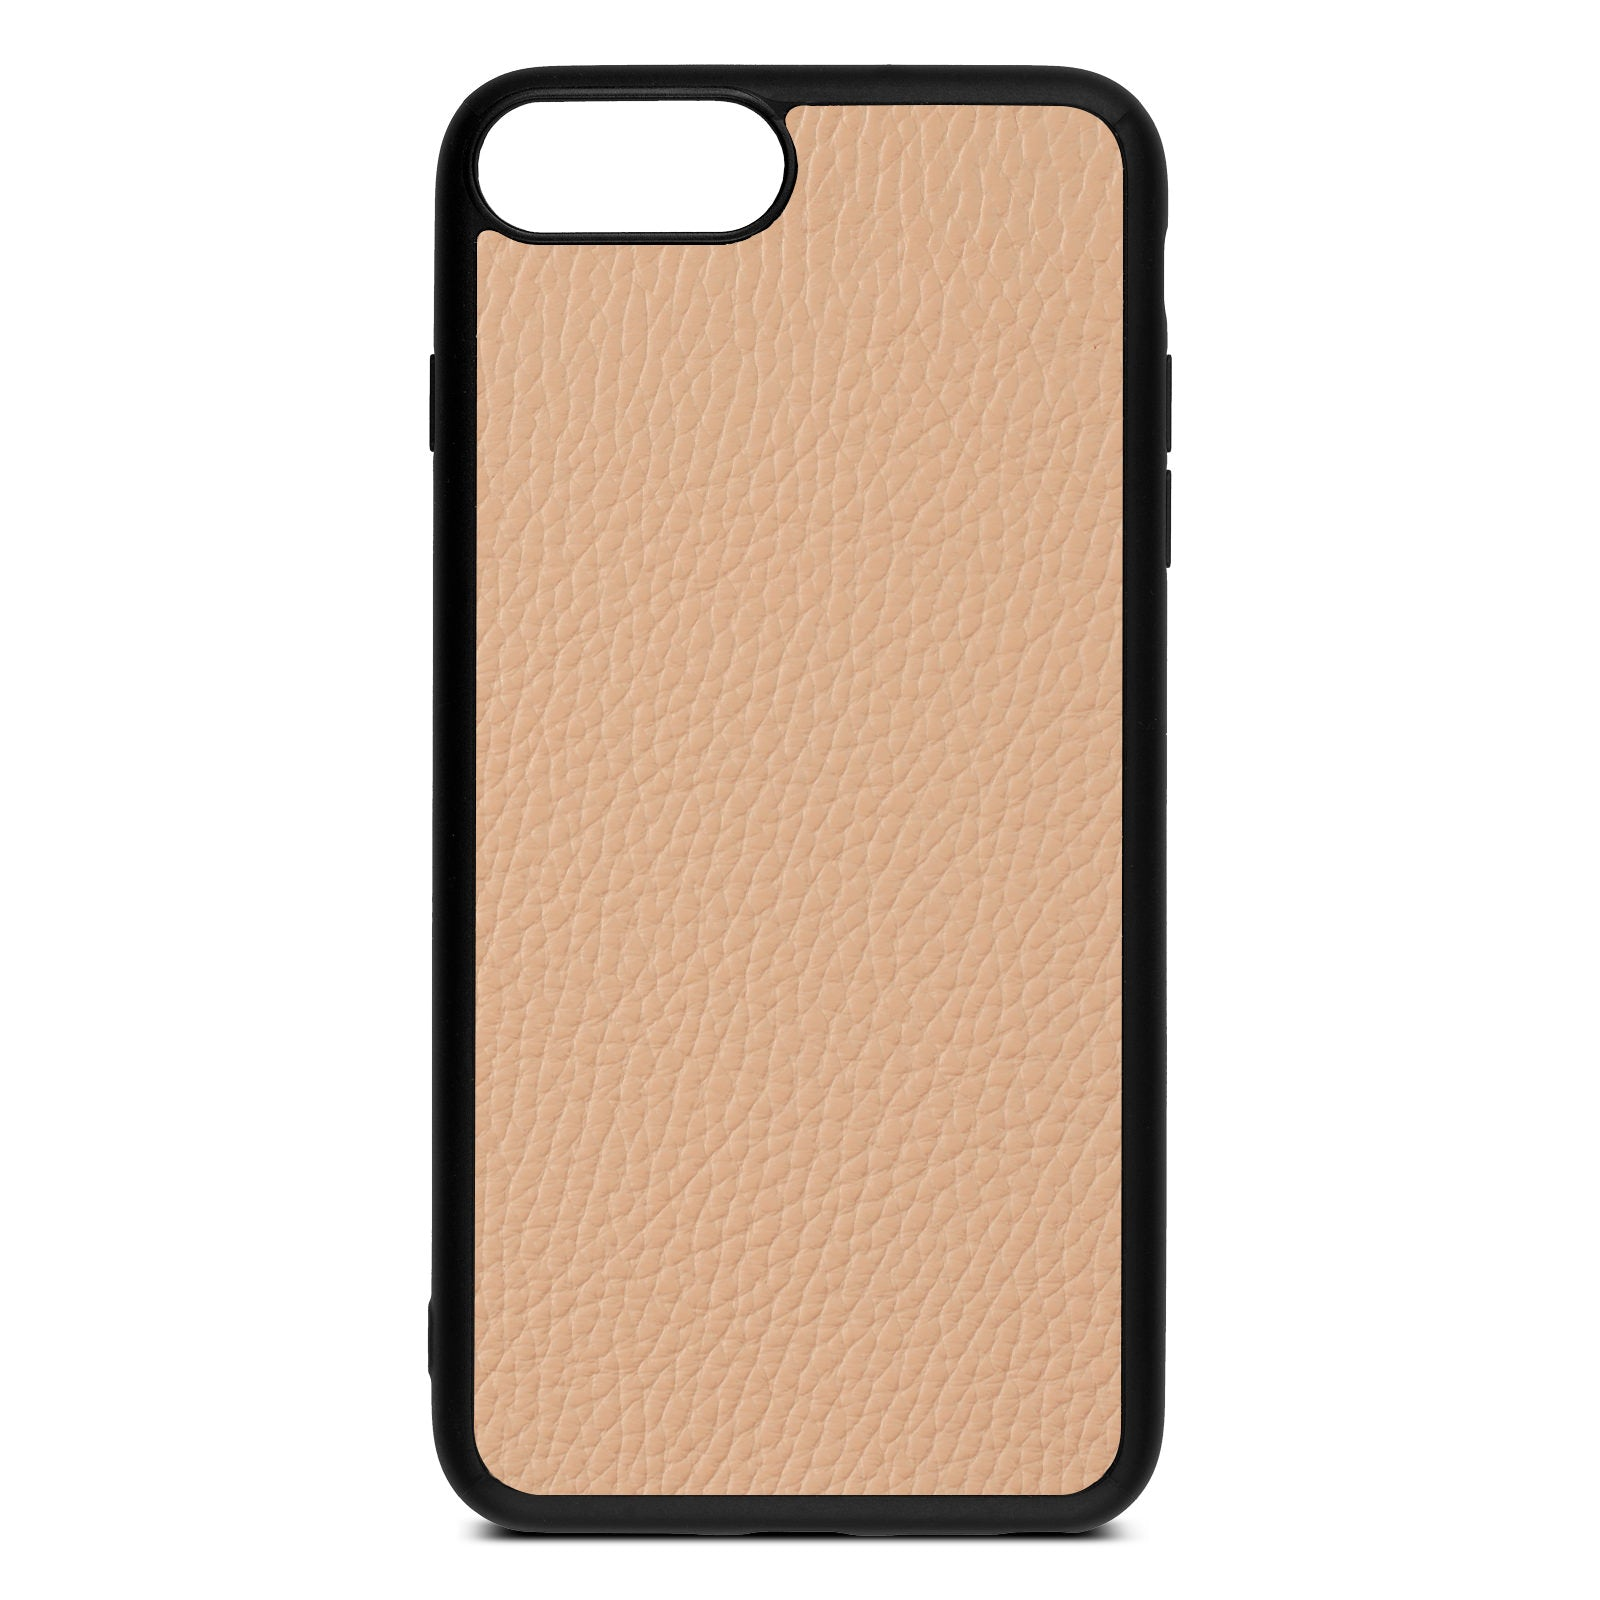 Blank iPhone 8 Plus Nude Pebble Leather Case